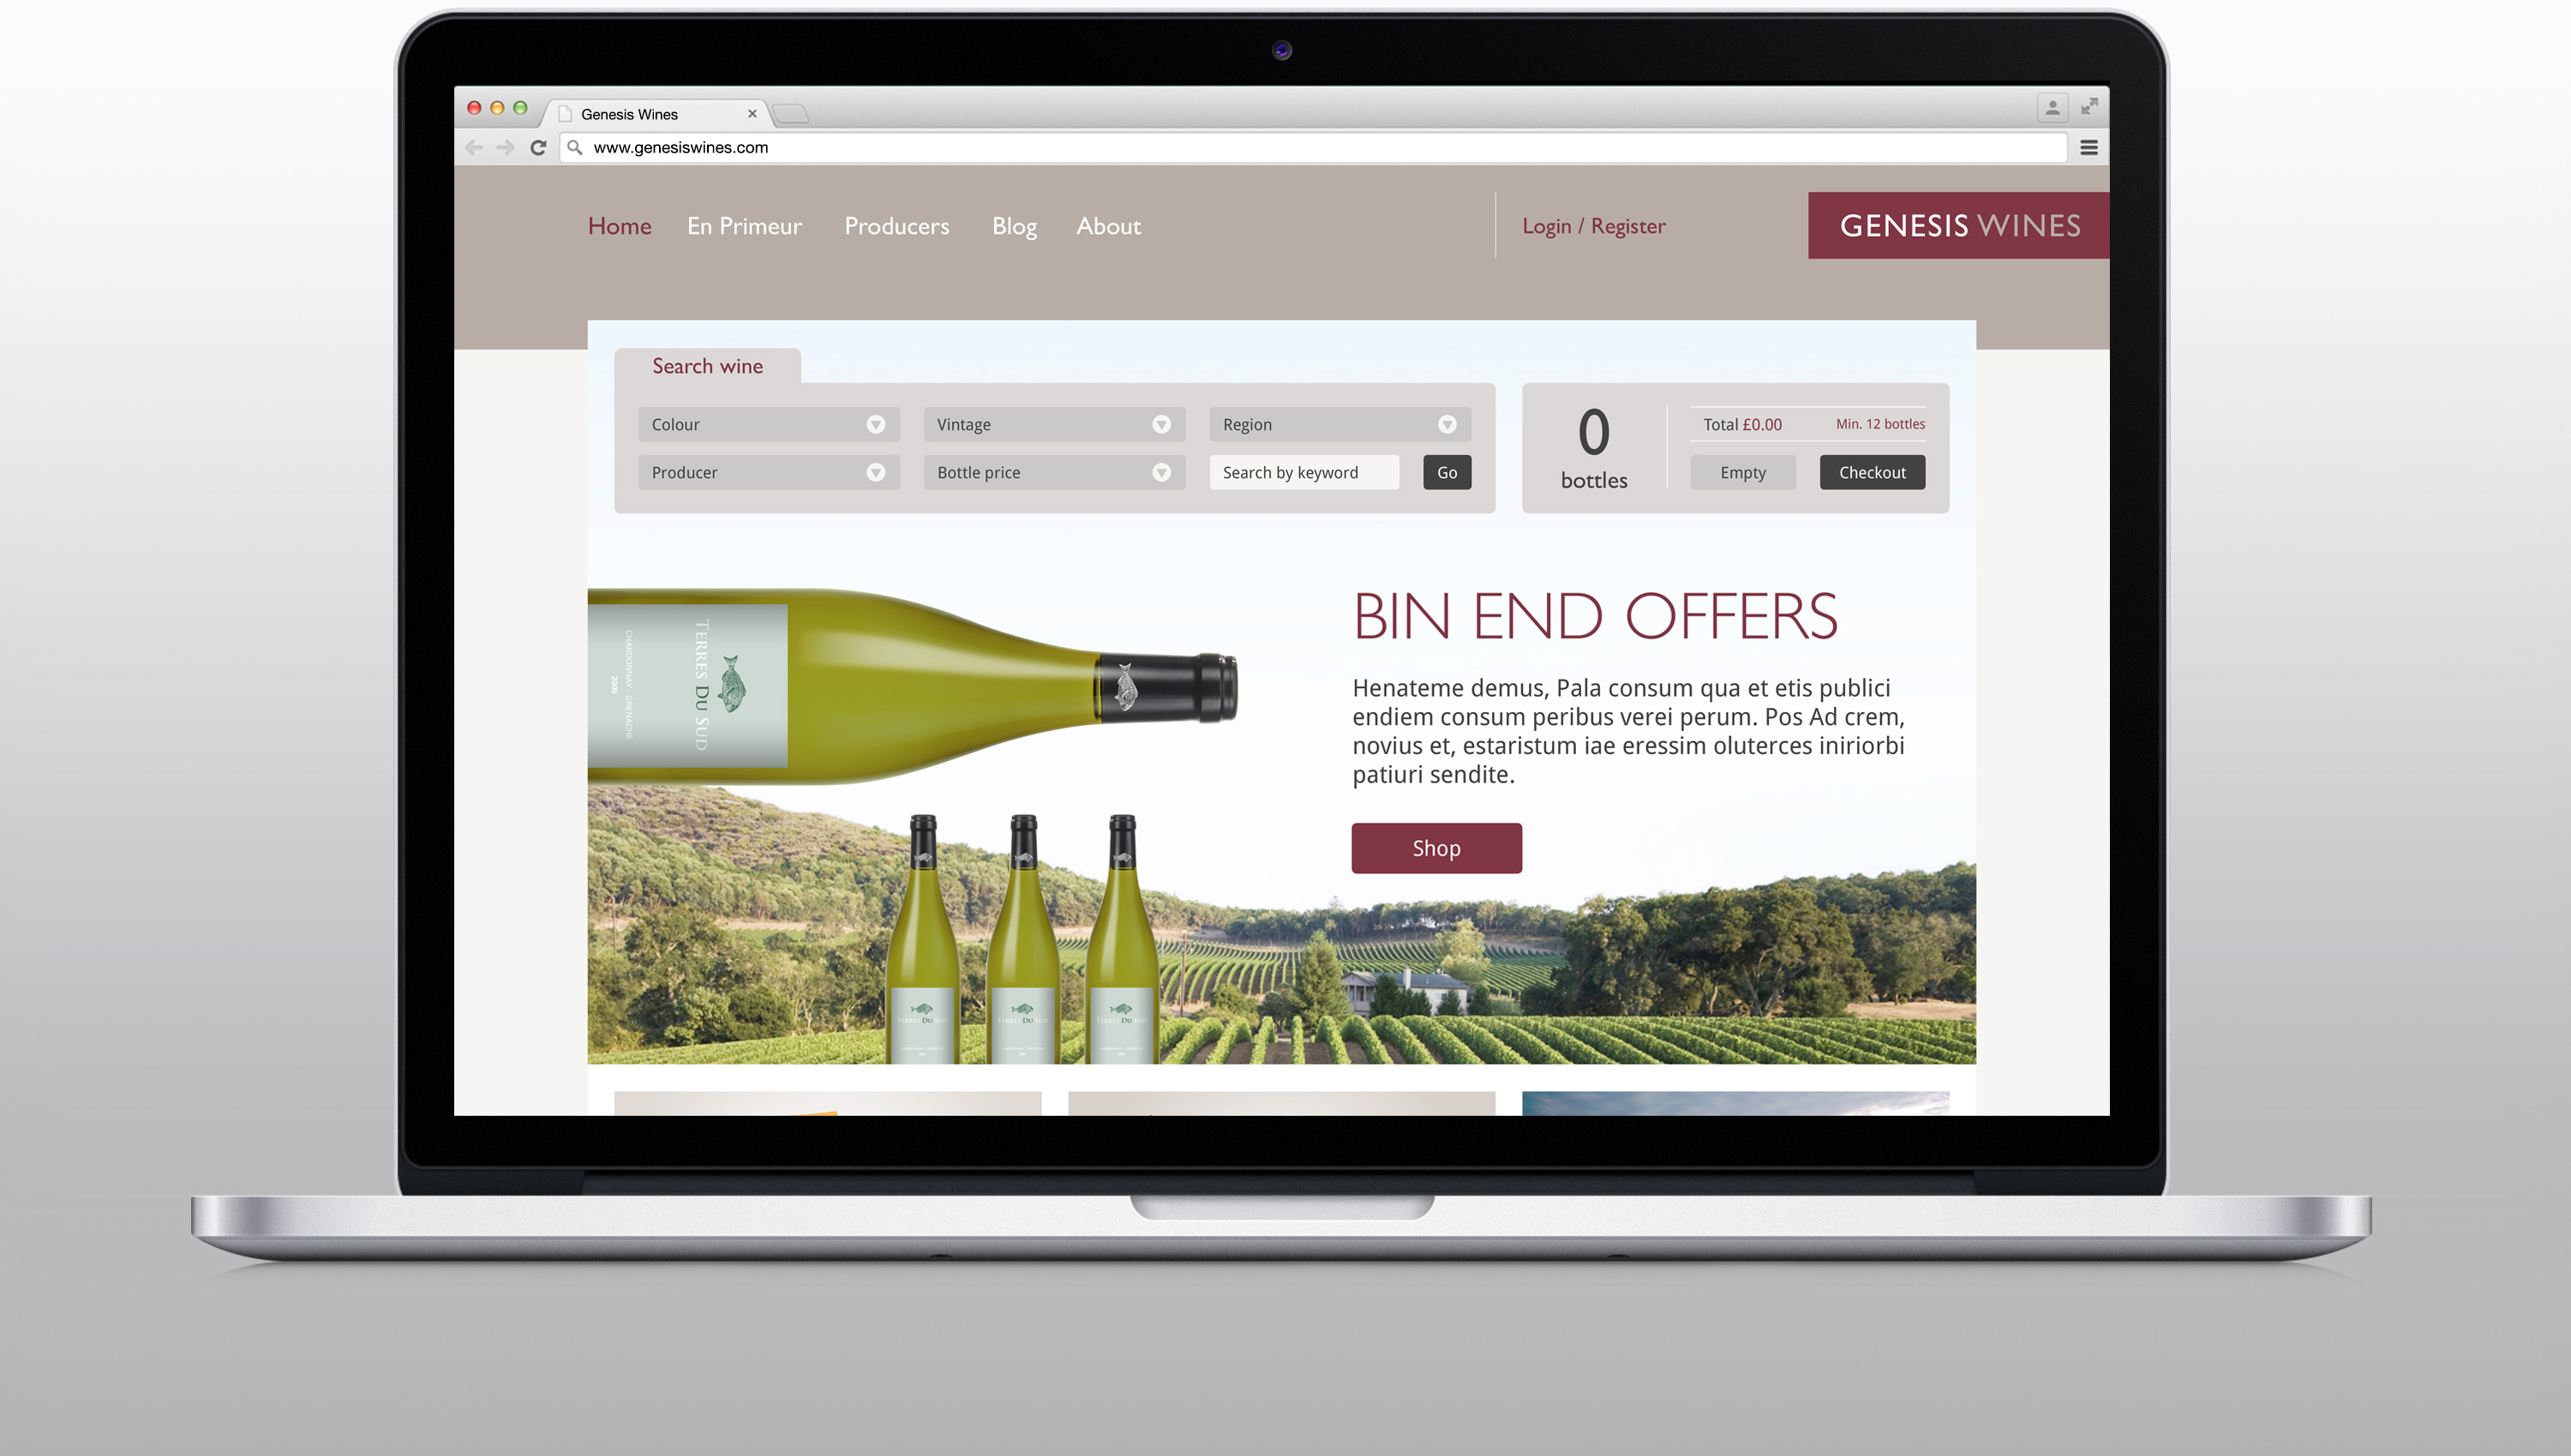 Genesis Wines website home page design and development on desktop